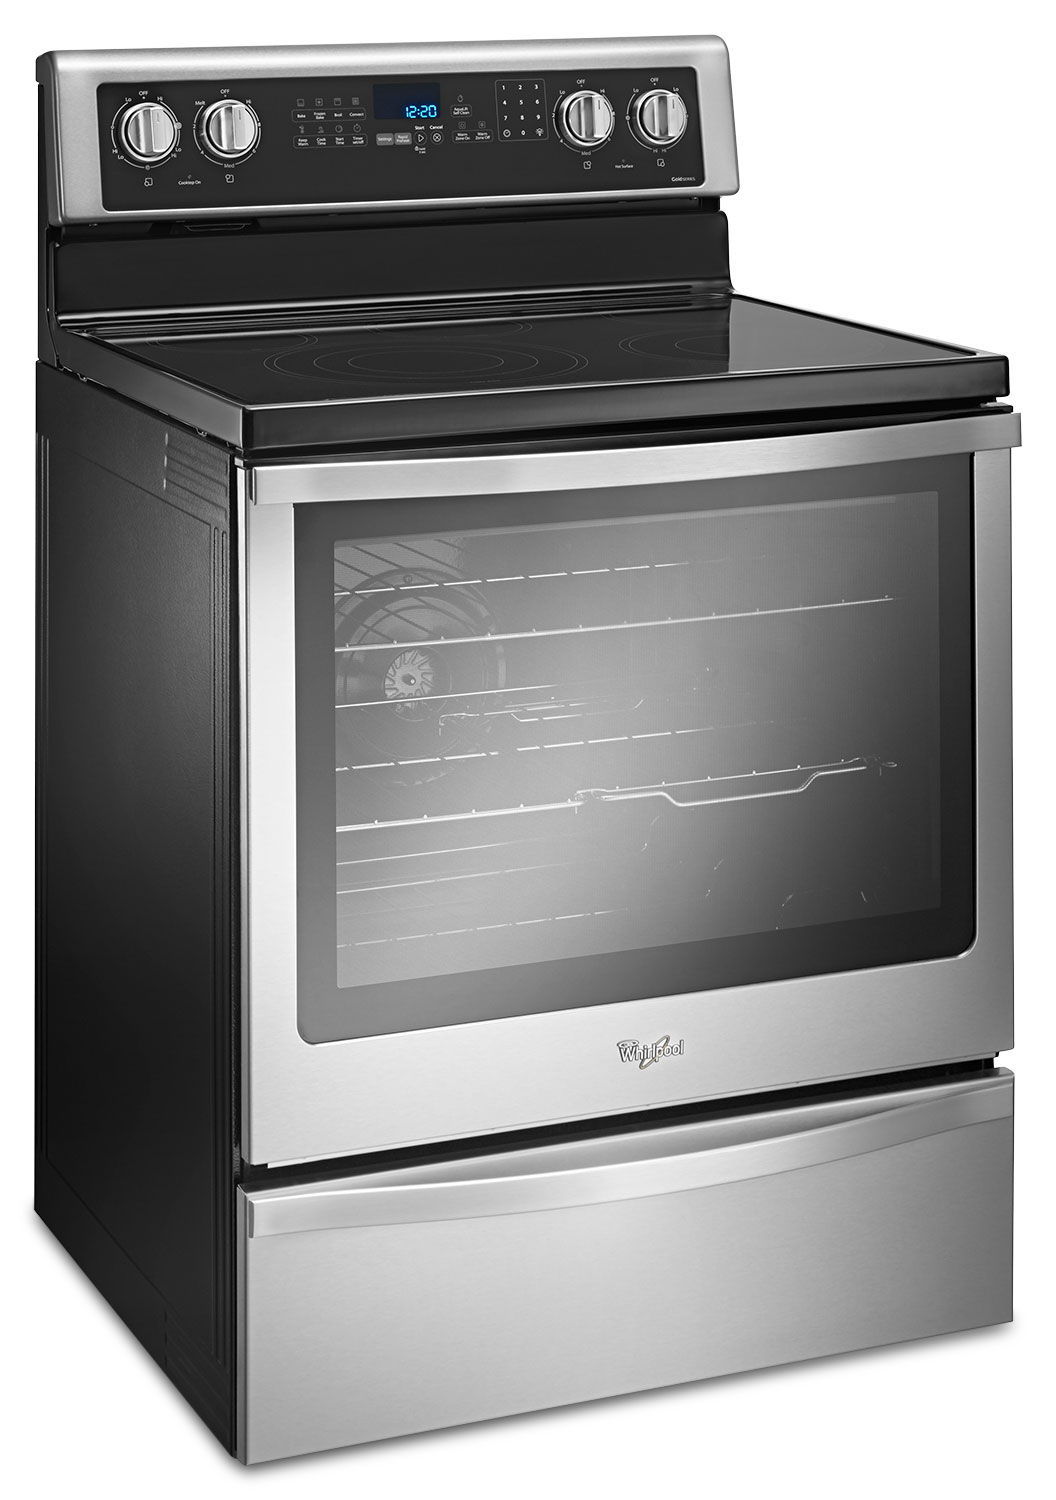 Whirlpool 6 4 cu ft freestanding electric range for 0 kitchen appliances